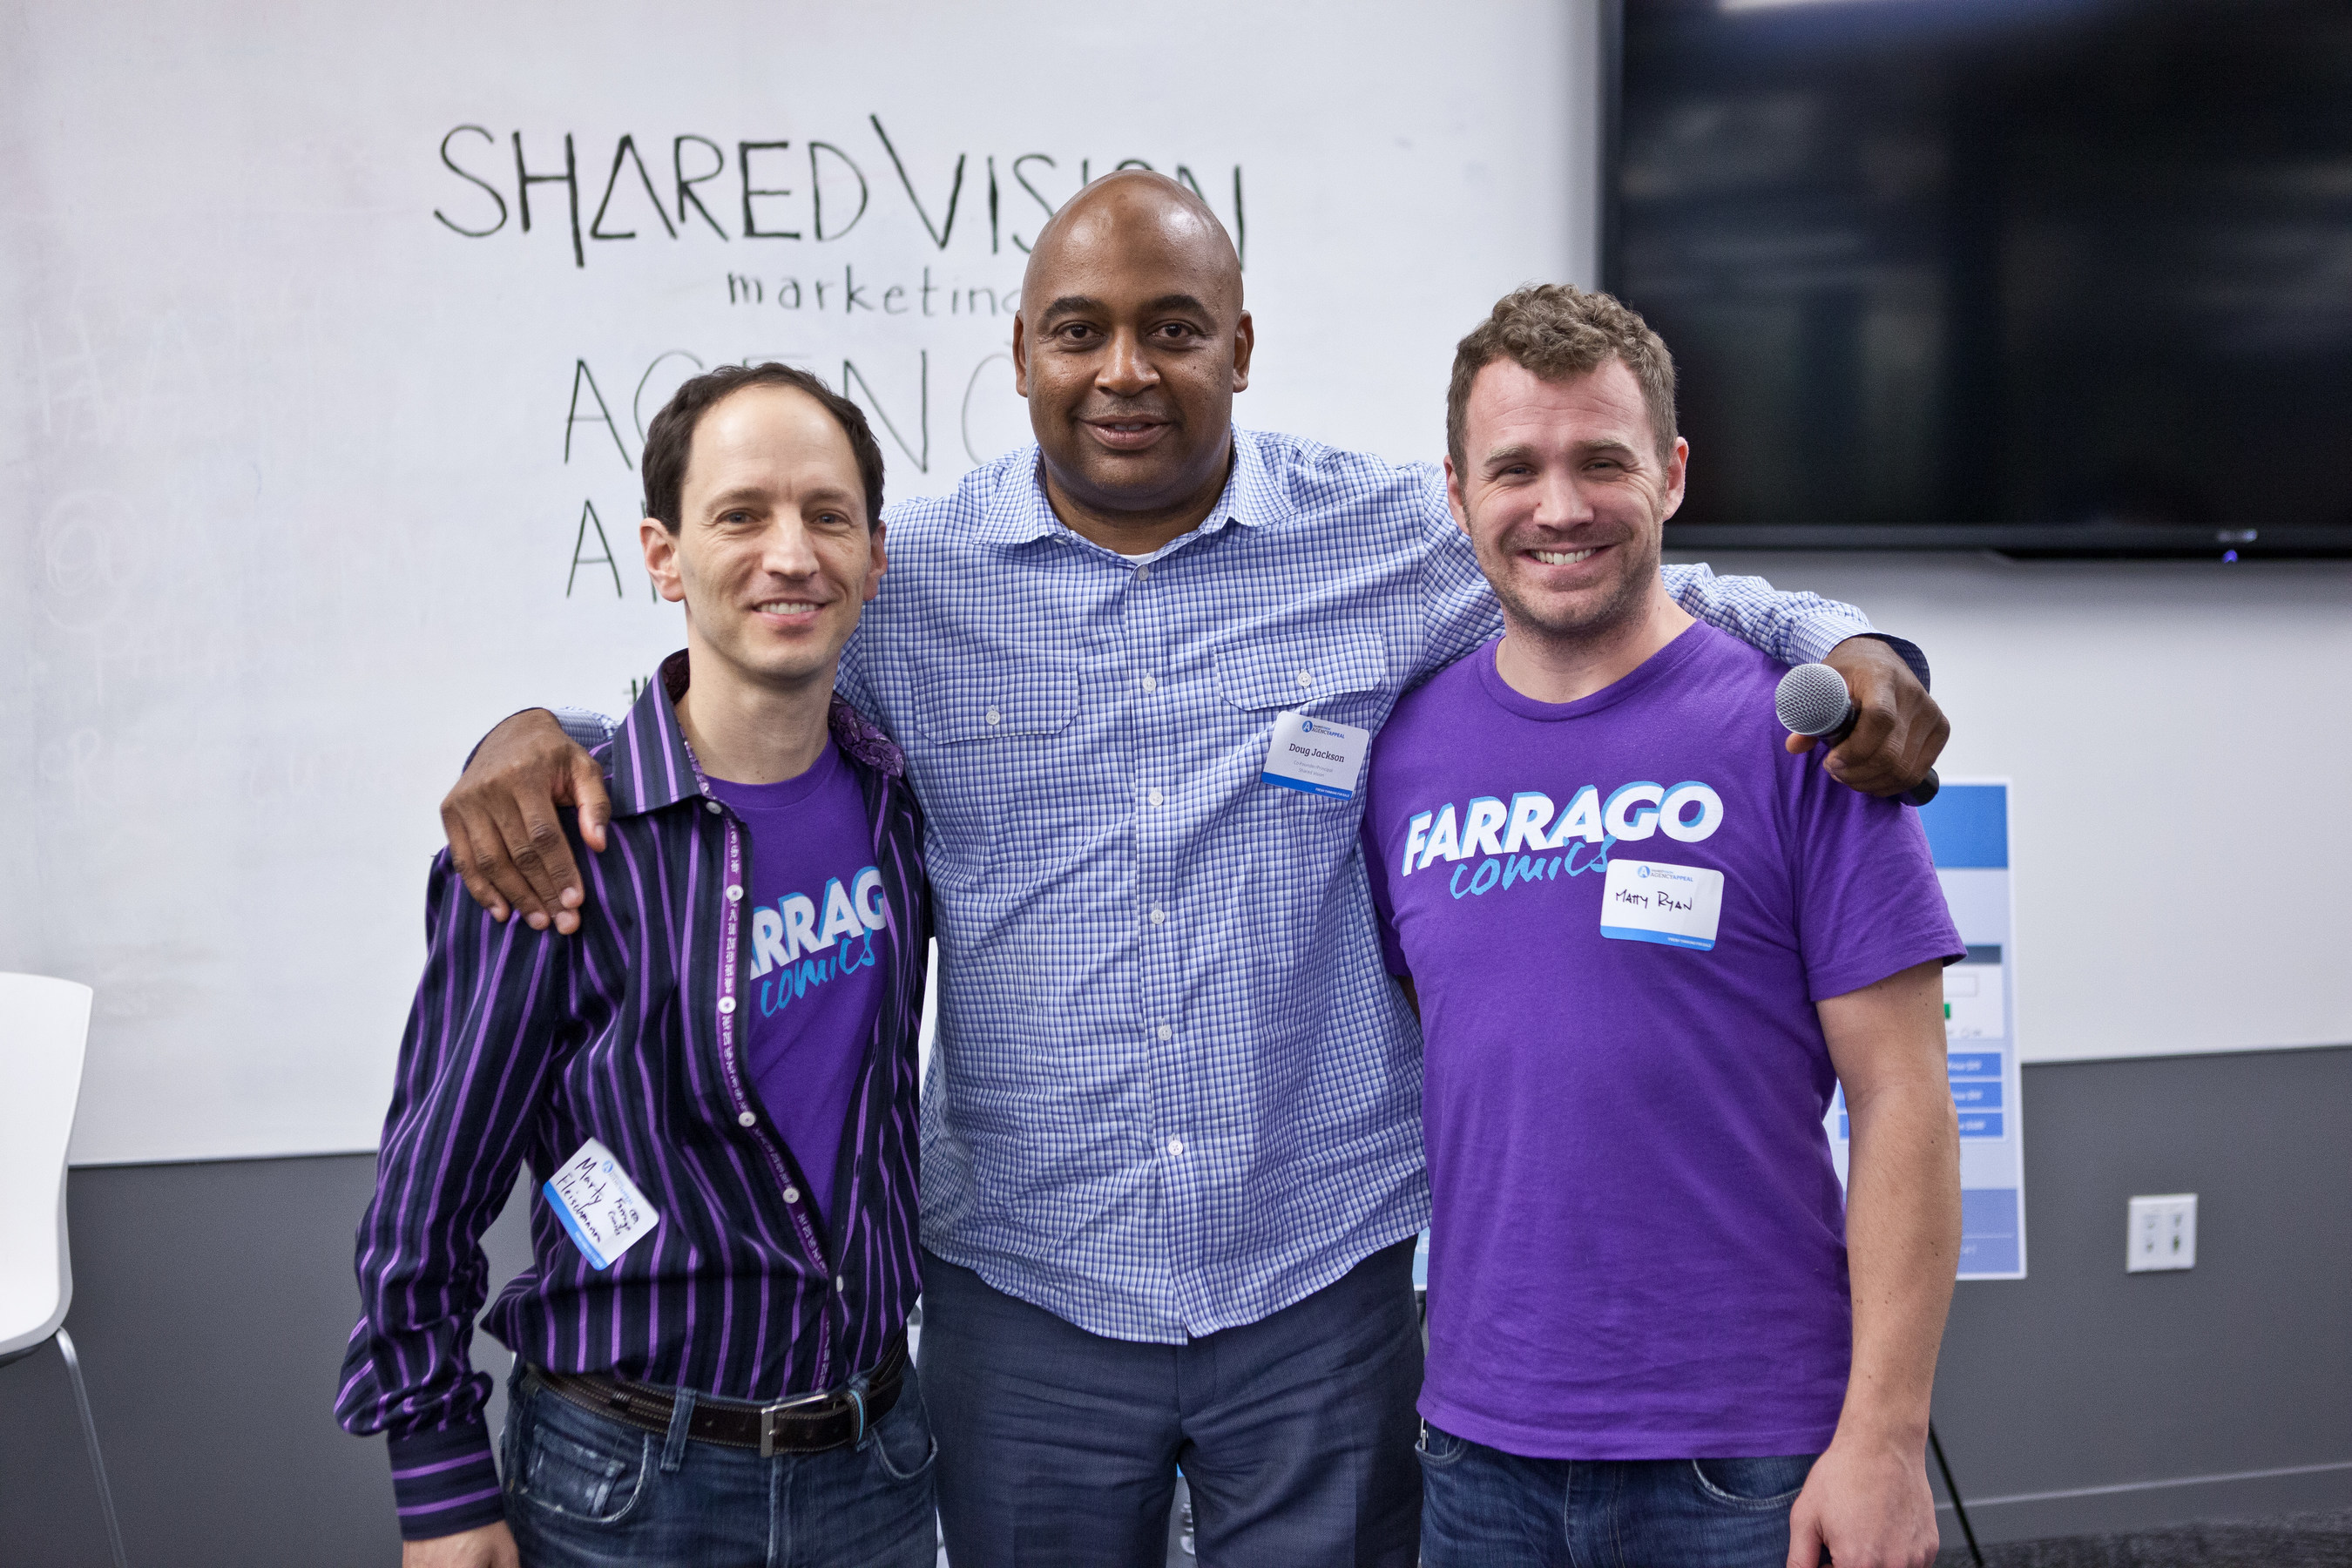 Startup Farrago Comics Wins Shared Vision Marketing's Agency Appeal Pitch Event.  Farrago pictured with Shared Vision Co-founder Douglas Jackson.